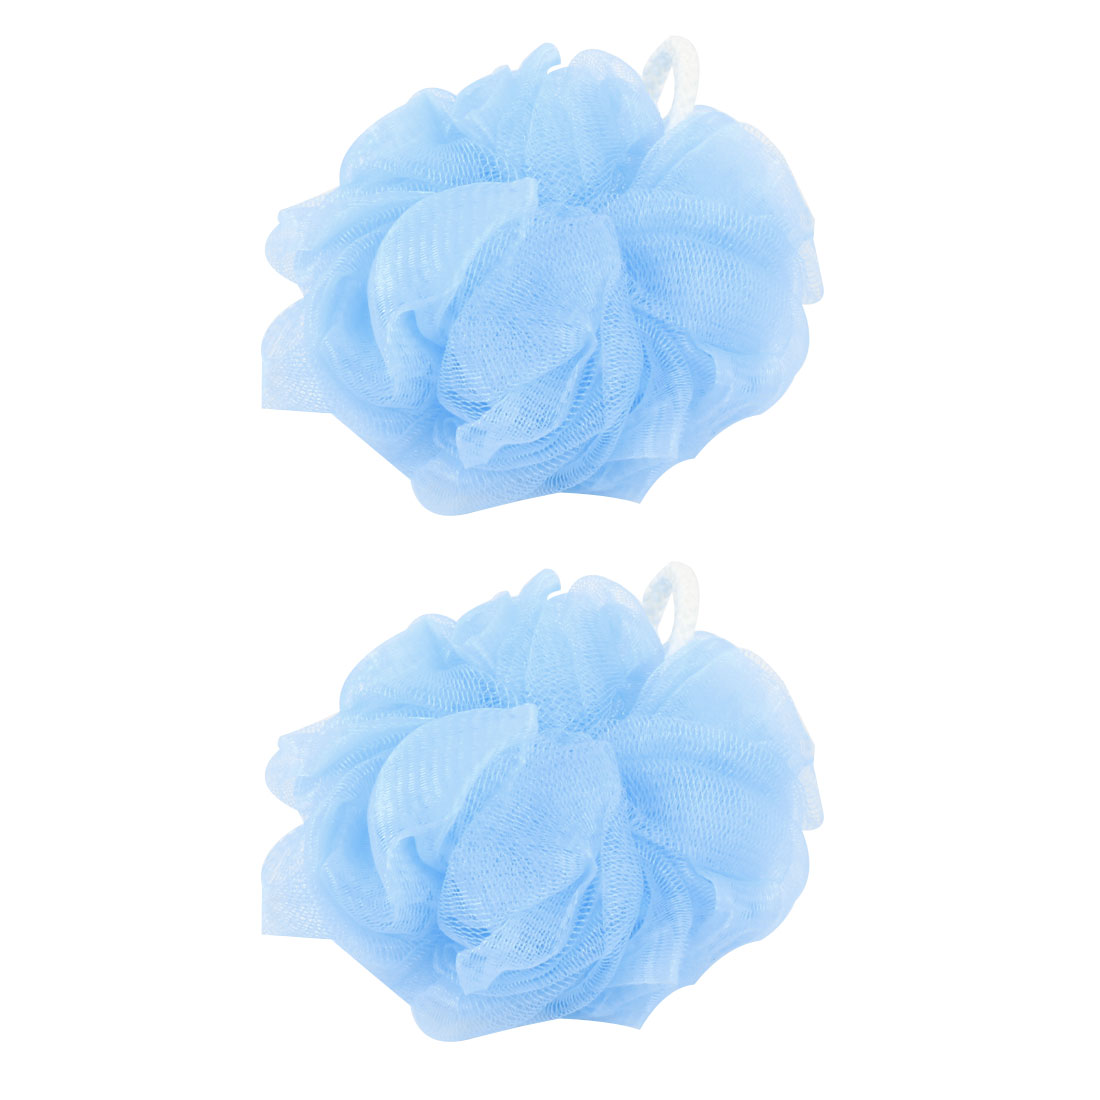 2 Pcs Bathroom Body Washing Bathing Shower Pouf Light Blue w Loop